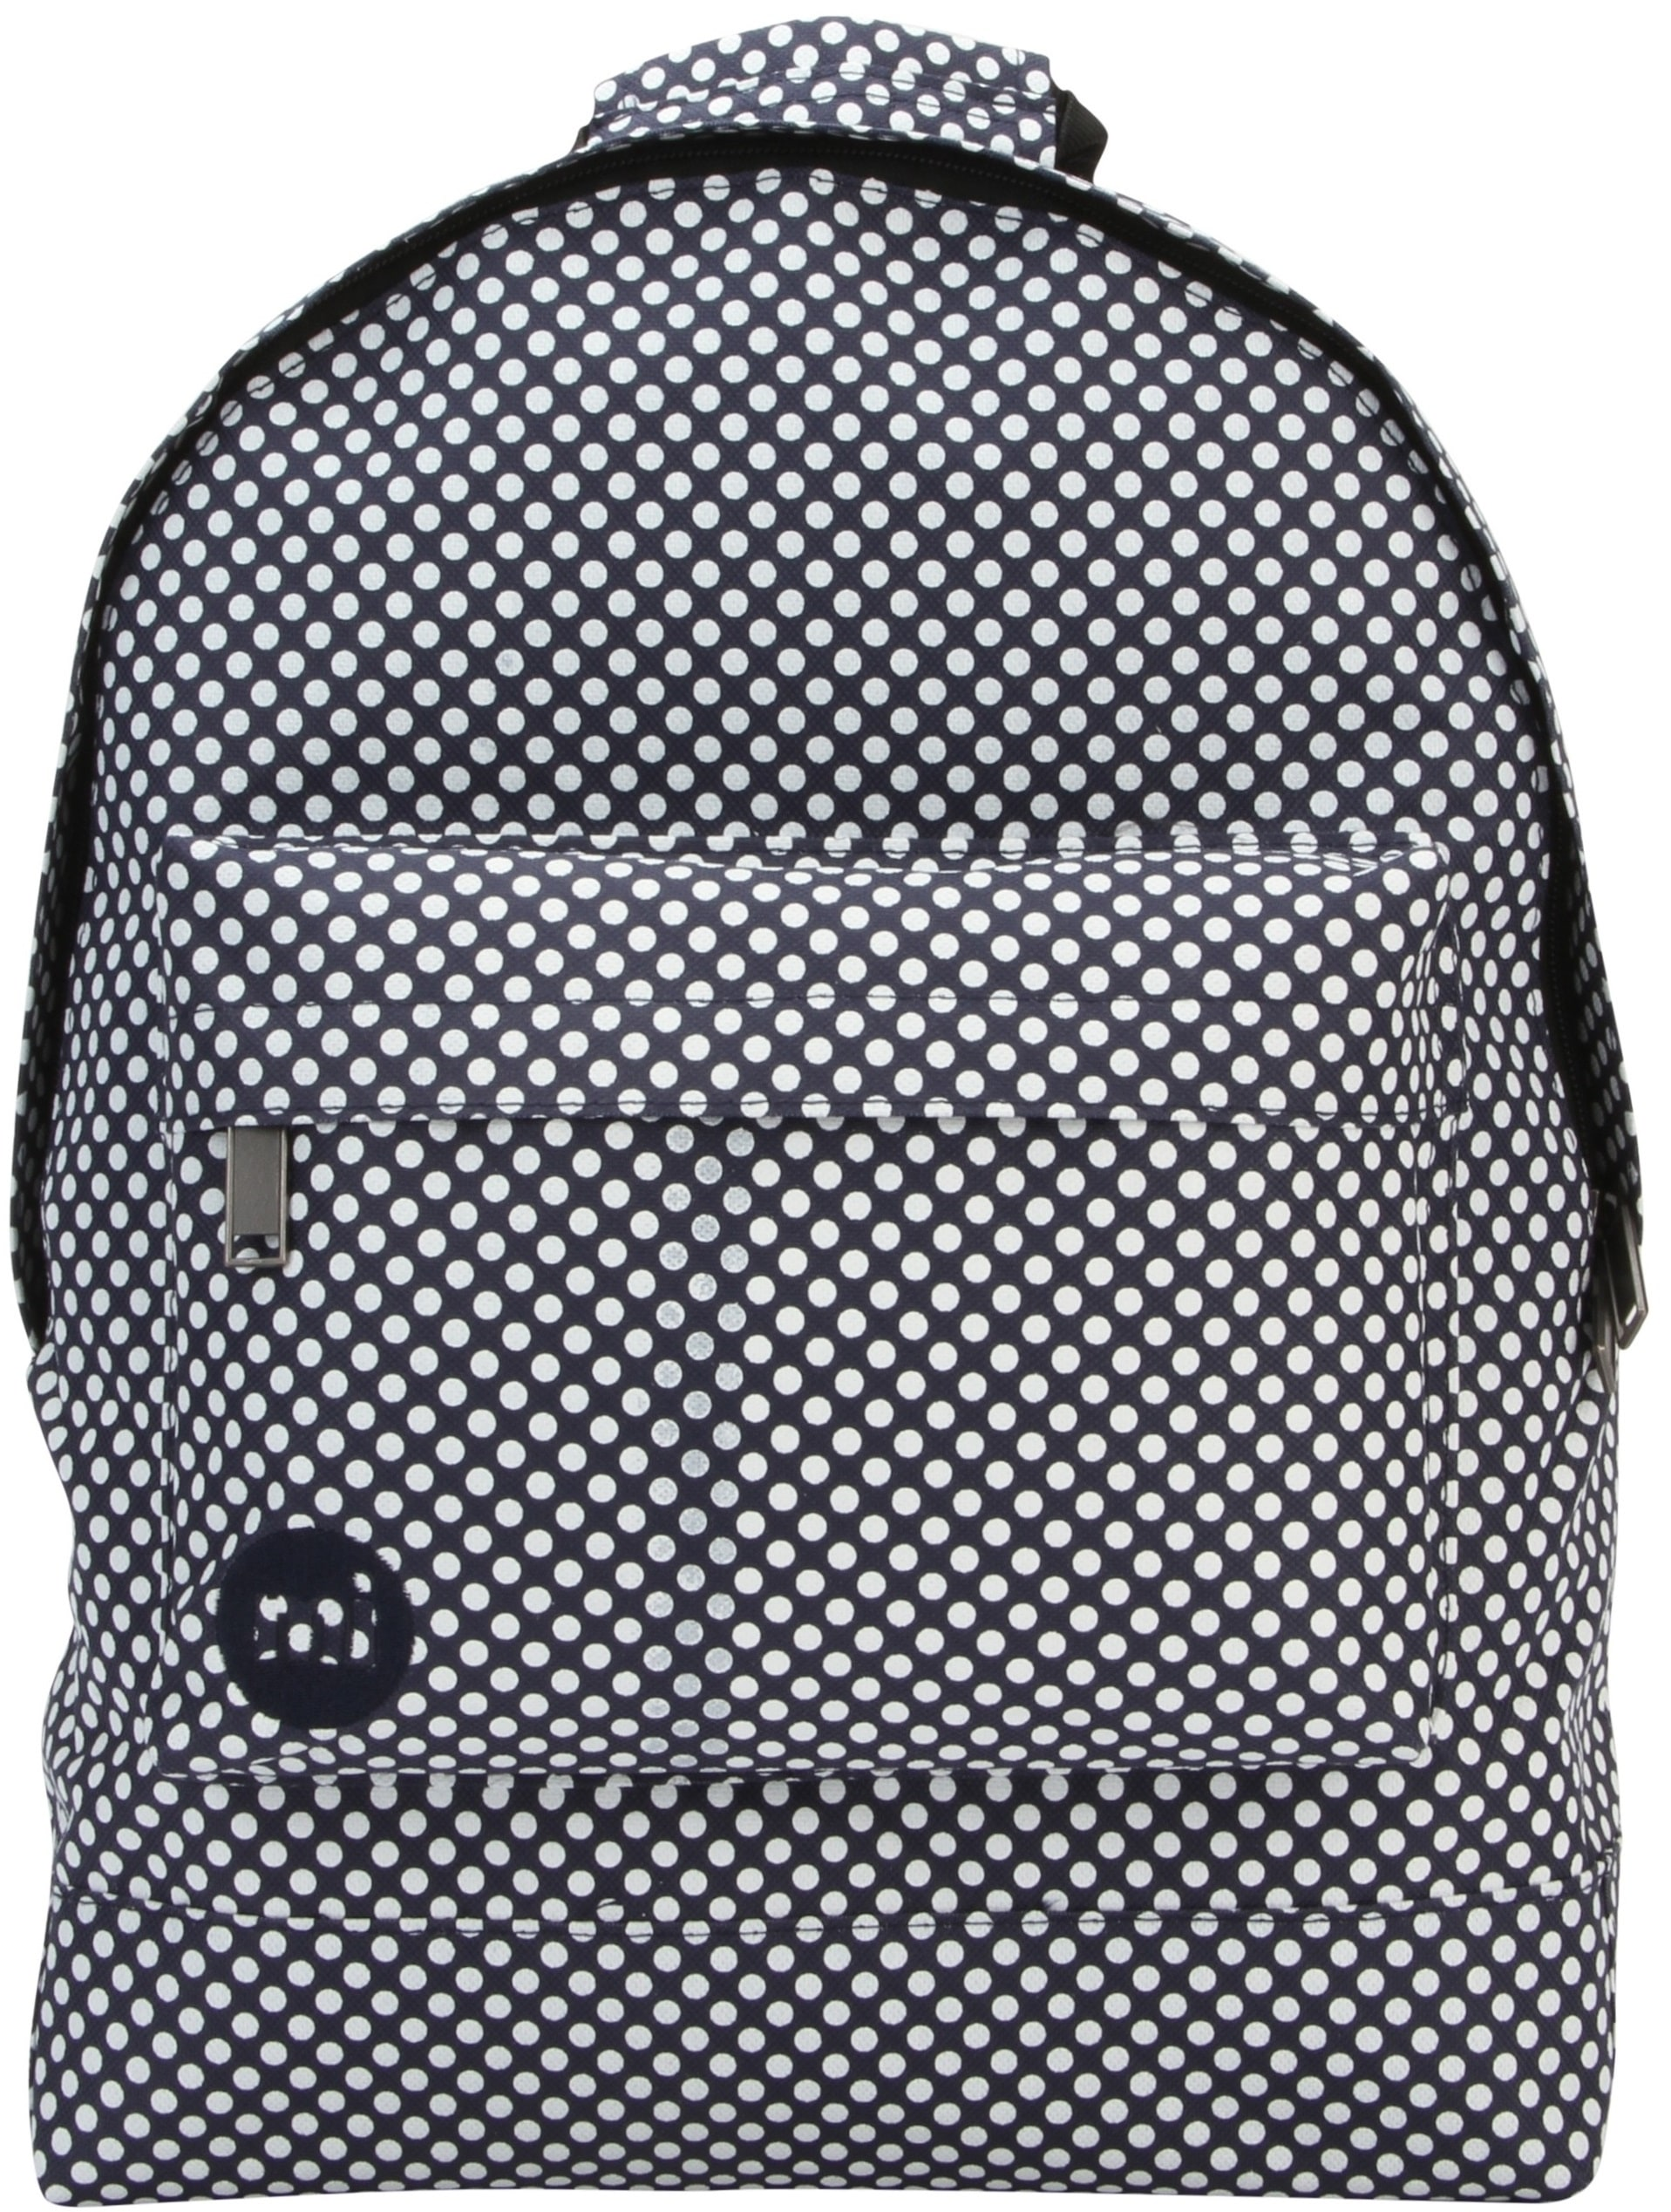 MiPac Microdot Backpack  Navy